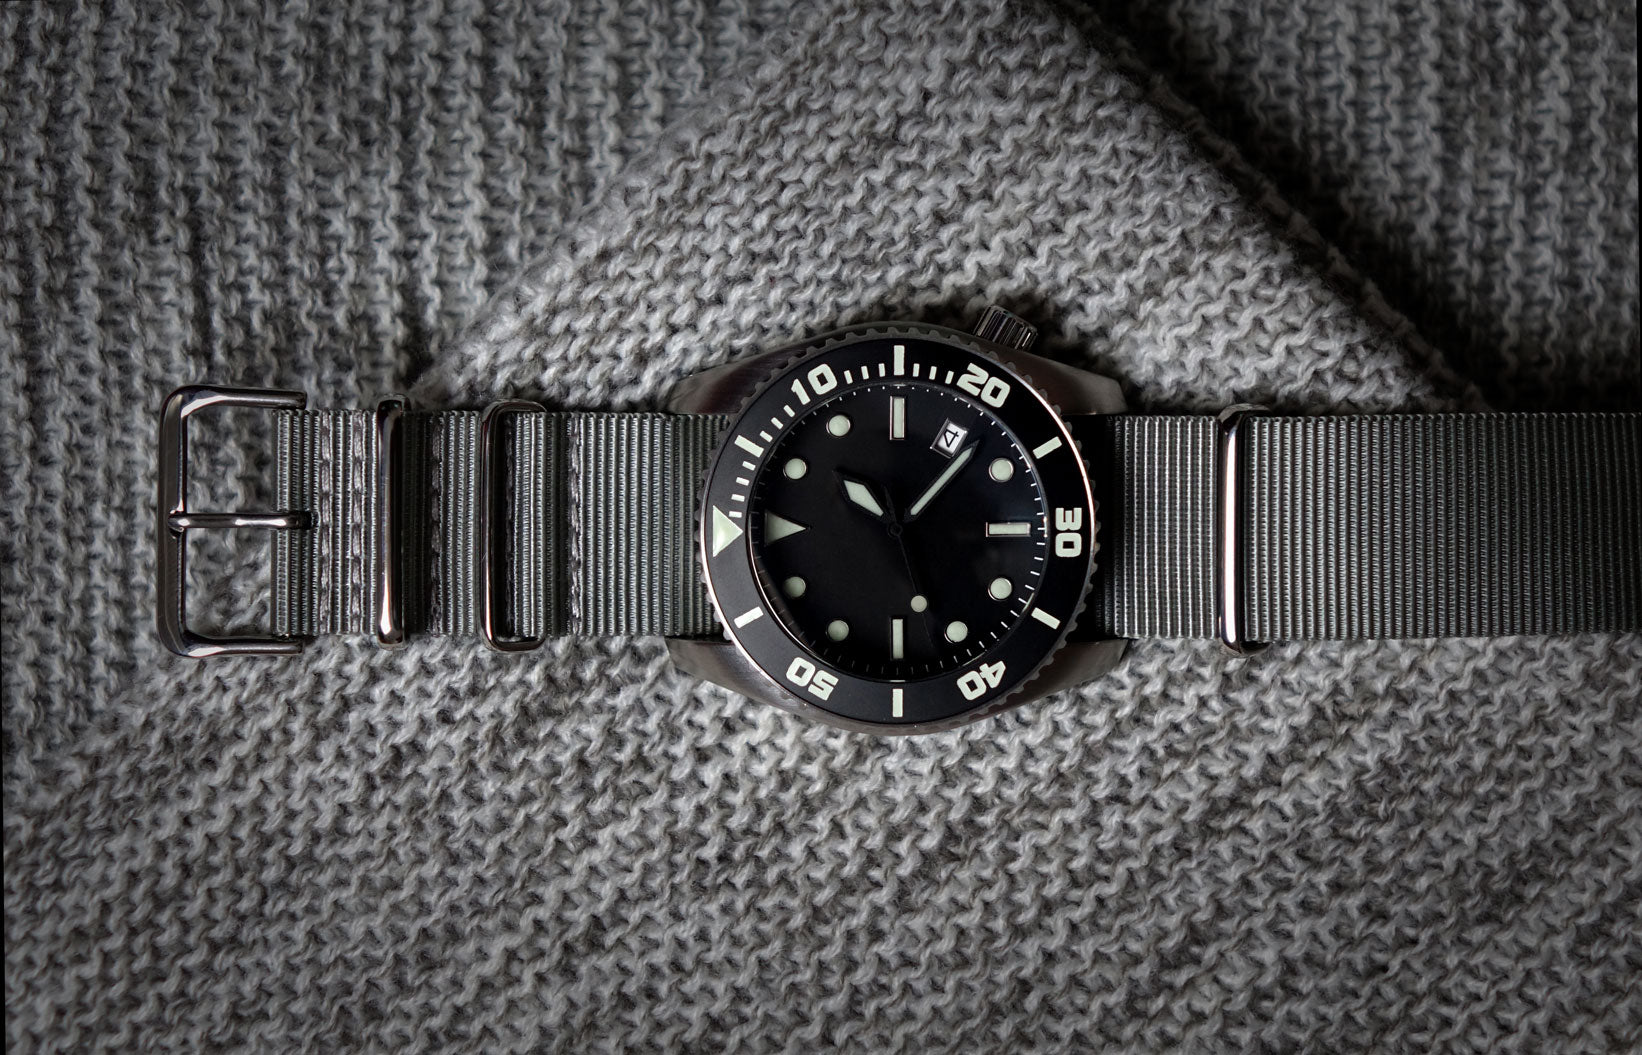 Enoksen - Blog Post - Diver Watch - Enoksen Deep Dive Image